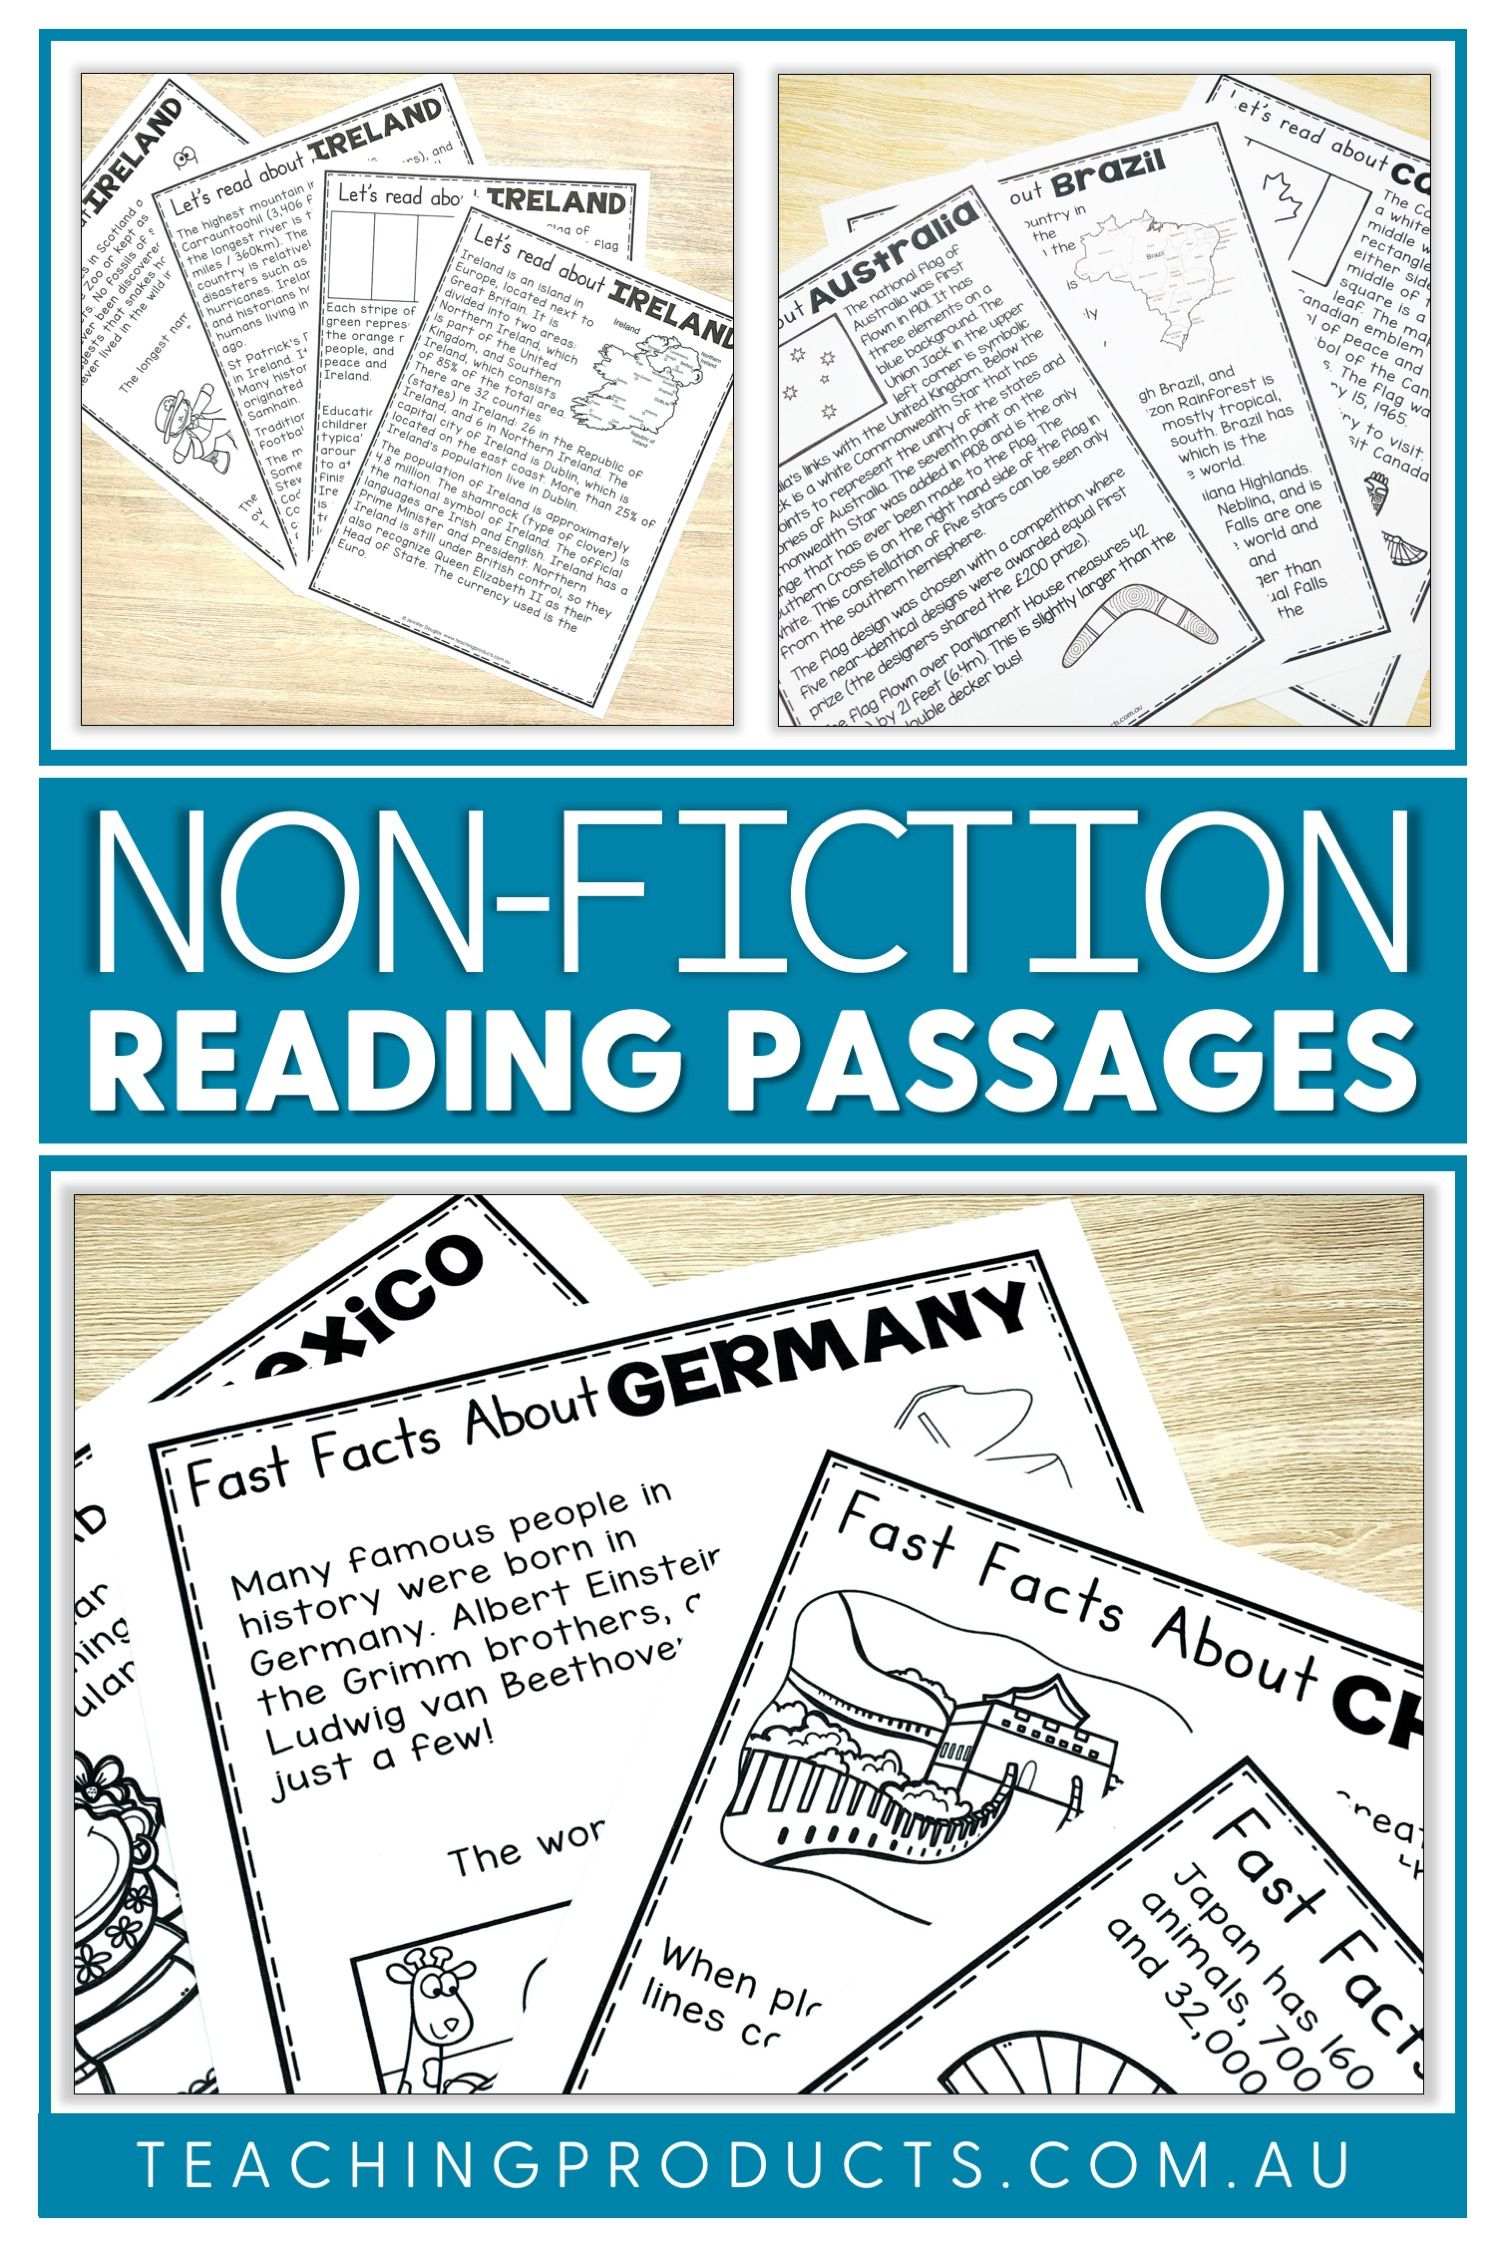 Non Fiction Reading Passages For Social Studies Reading Passages Fiction Reading Passages Teacher Material Nonfiction reading comprehension social